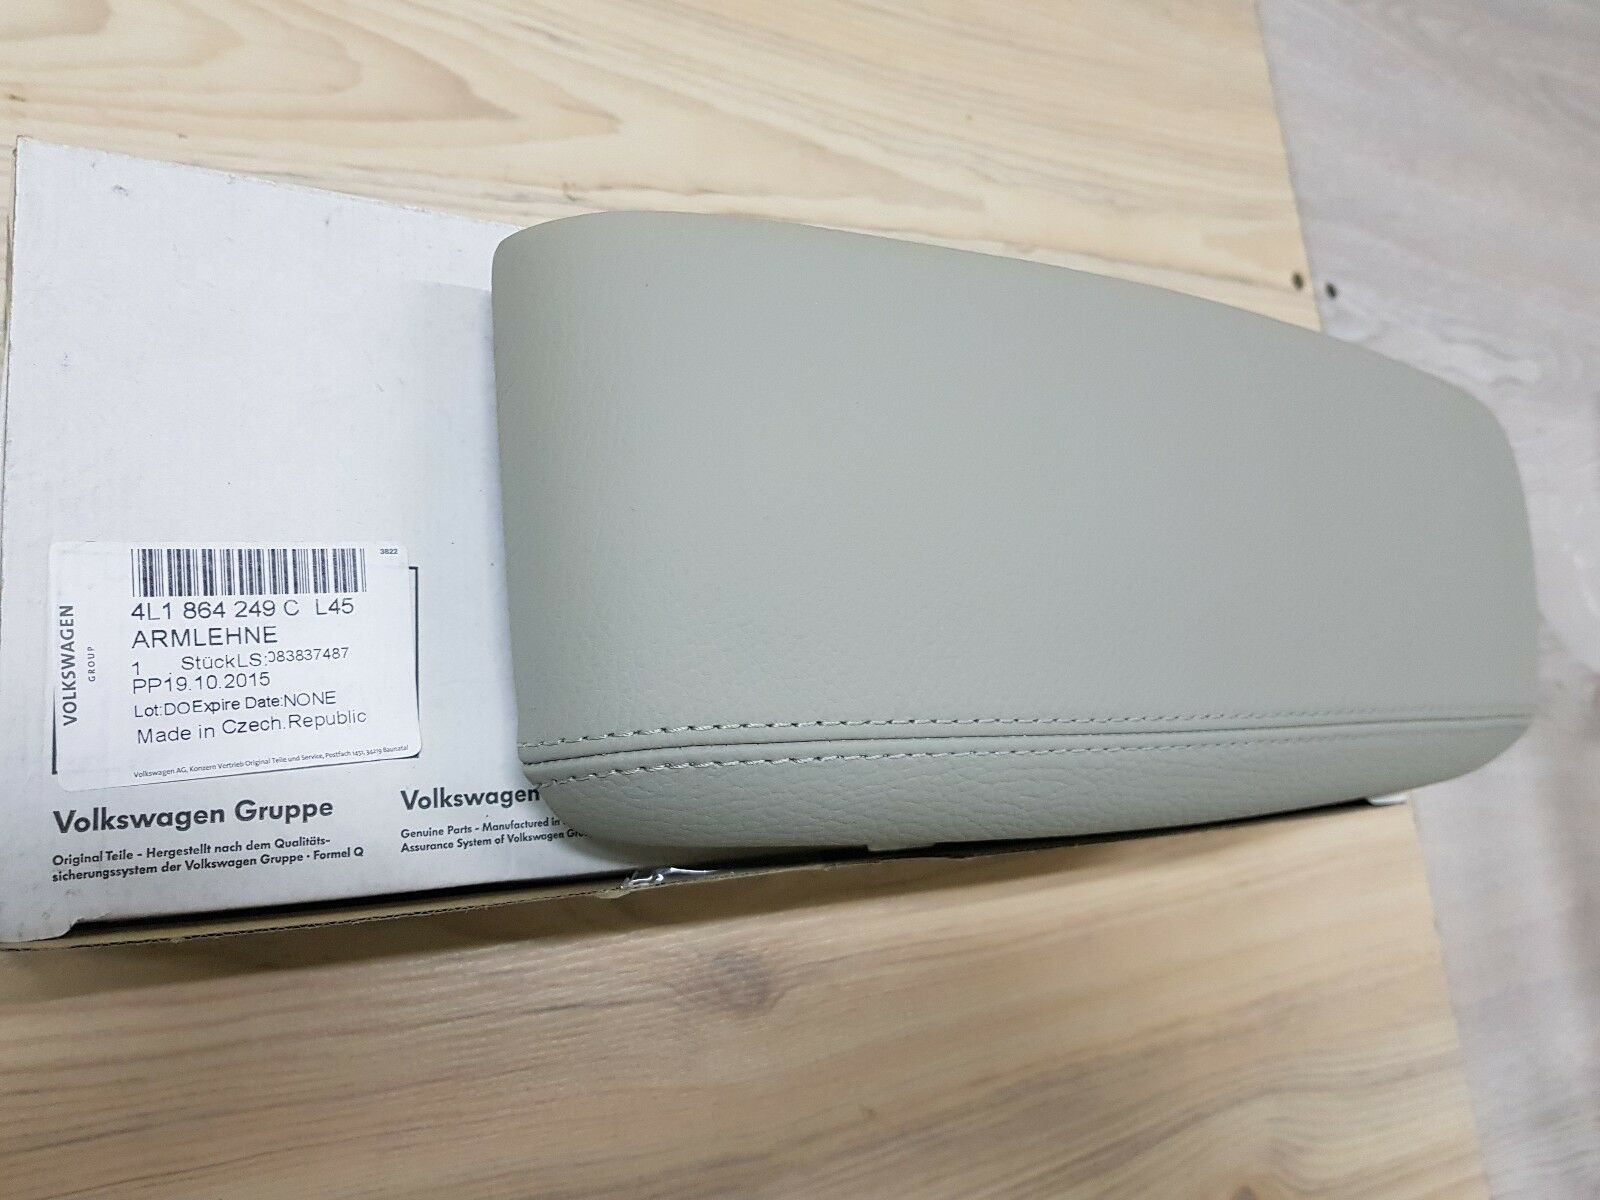 Audi Q7 05-15 OEM Center Console Armrest Left 4L1864249CL45 GENUINE